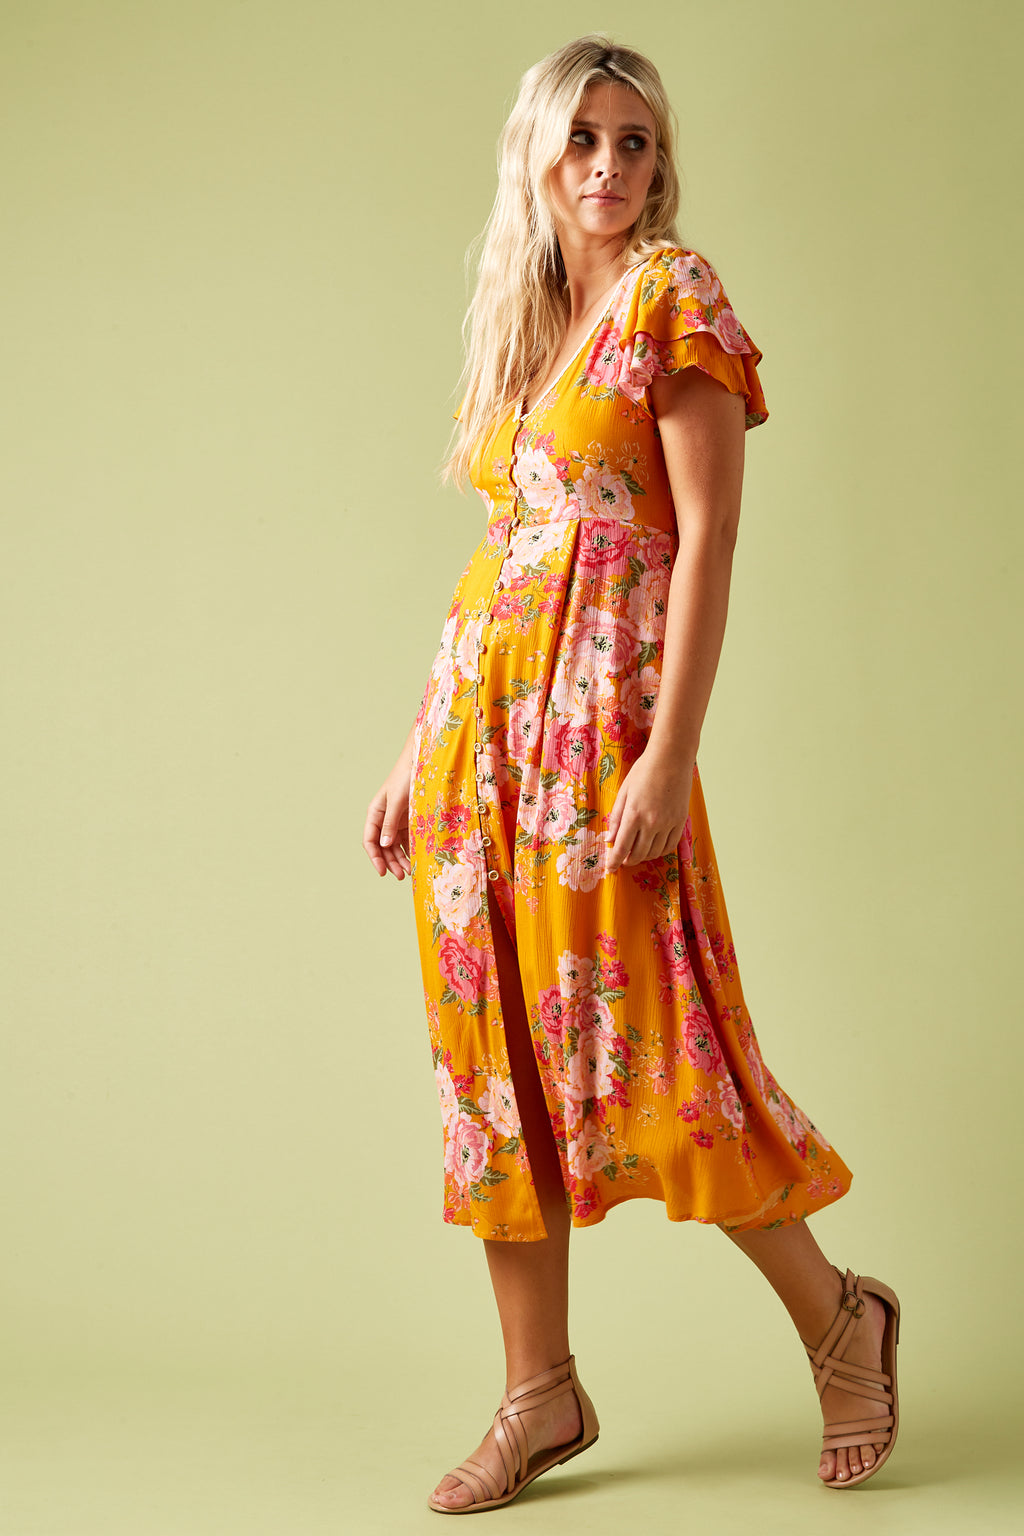 The Ace Maxi - Calypso - Isle of Mine Clothing - Dress Maxi Oversize